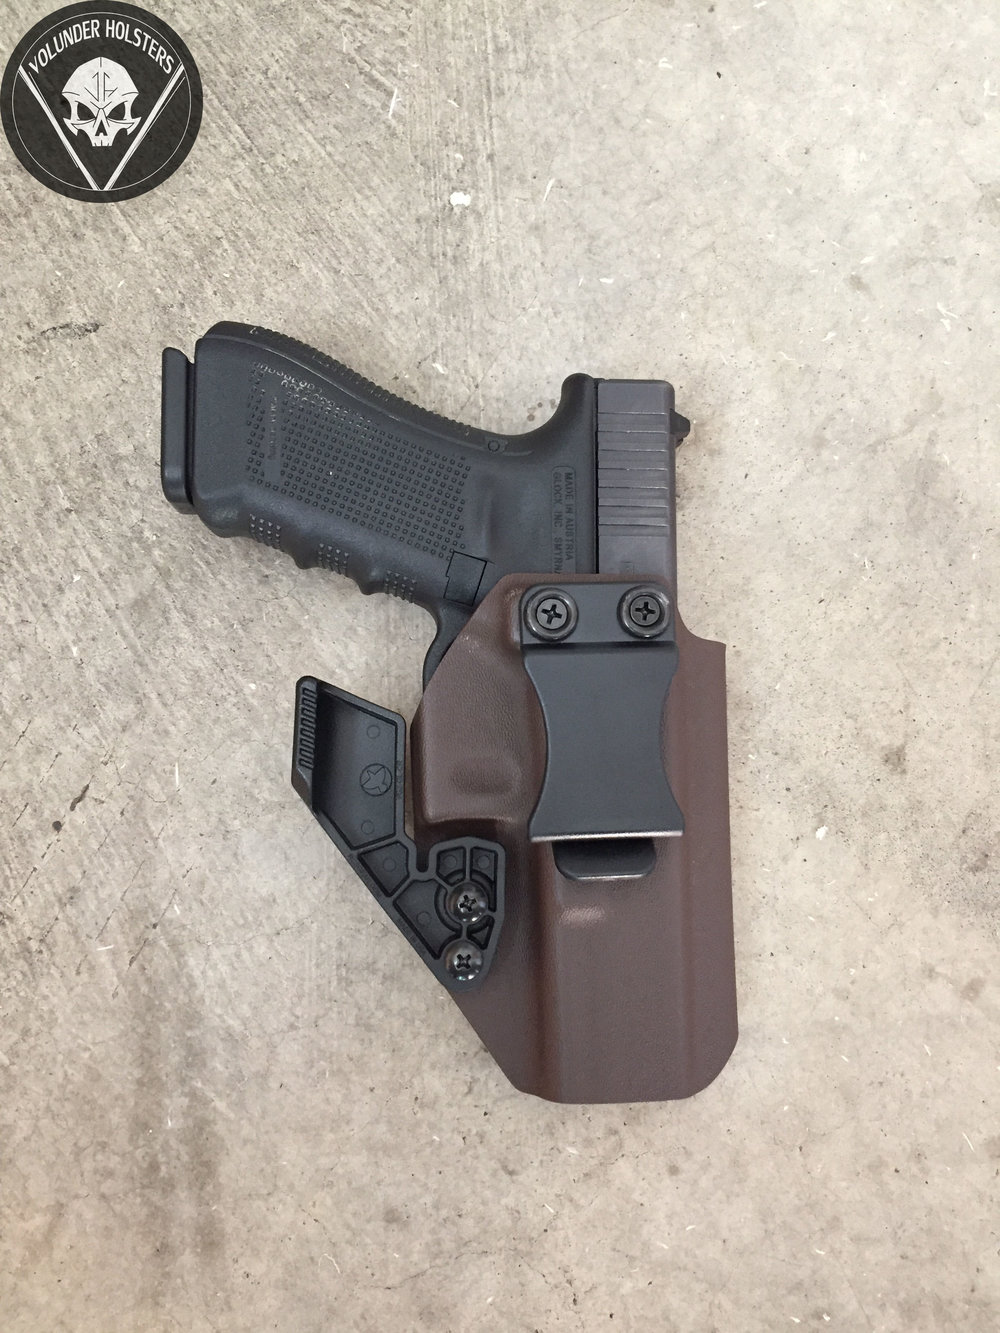 G17 Chocolate brown with Claw 1.jpg